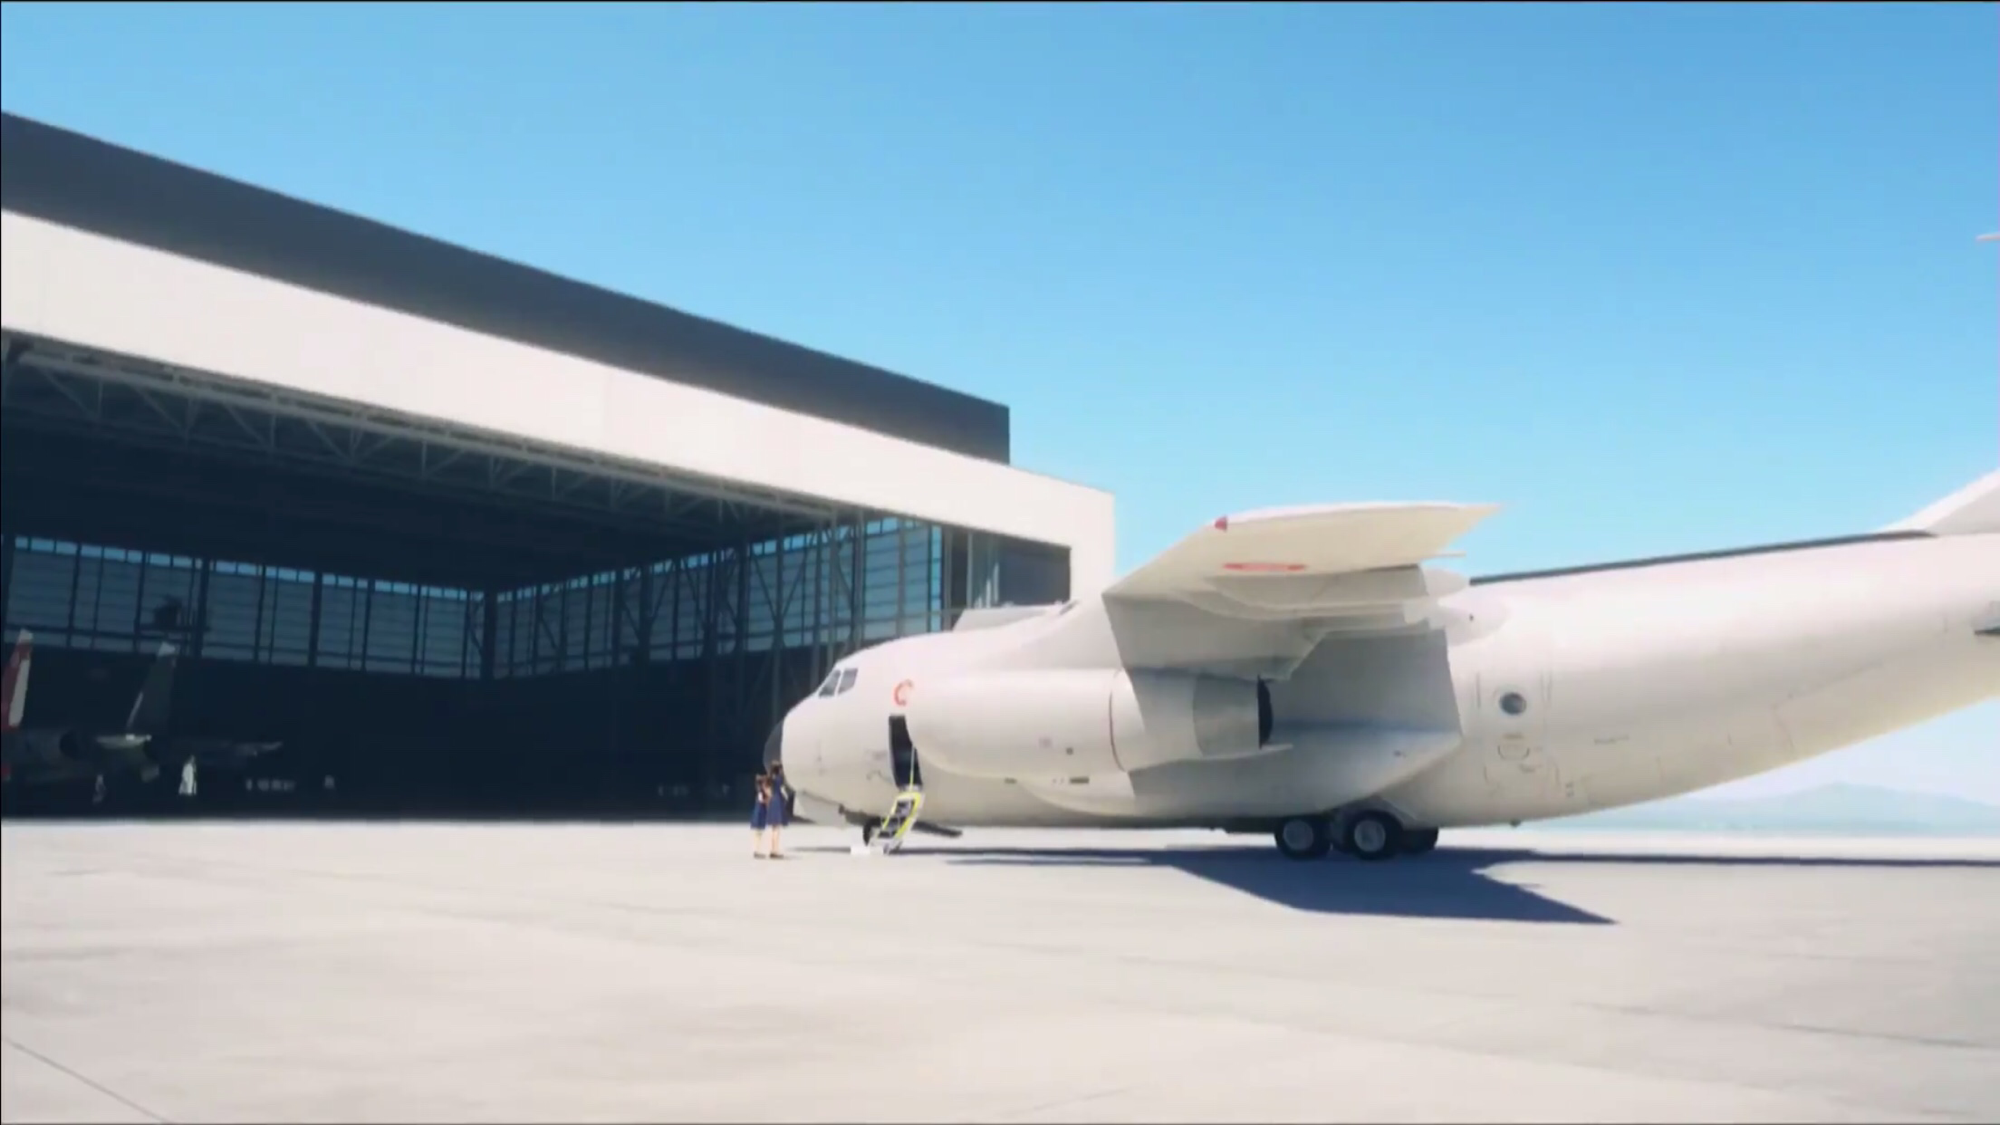 Anyone knows what this aircraft is?